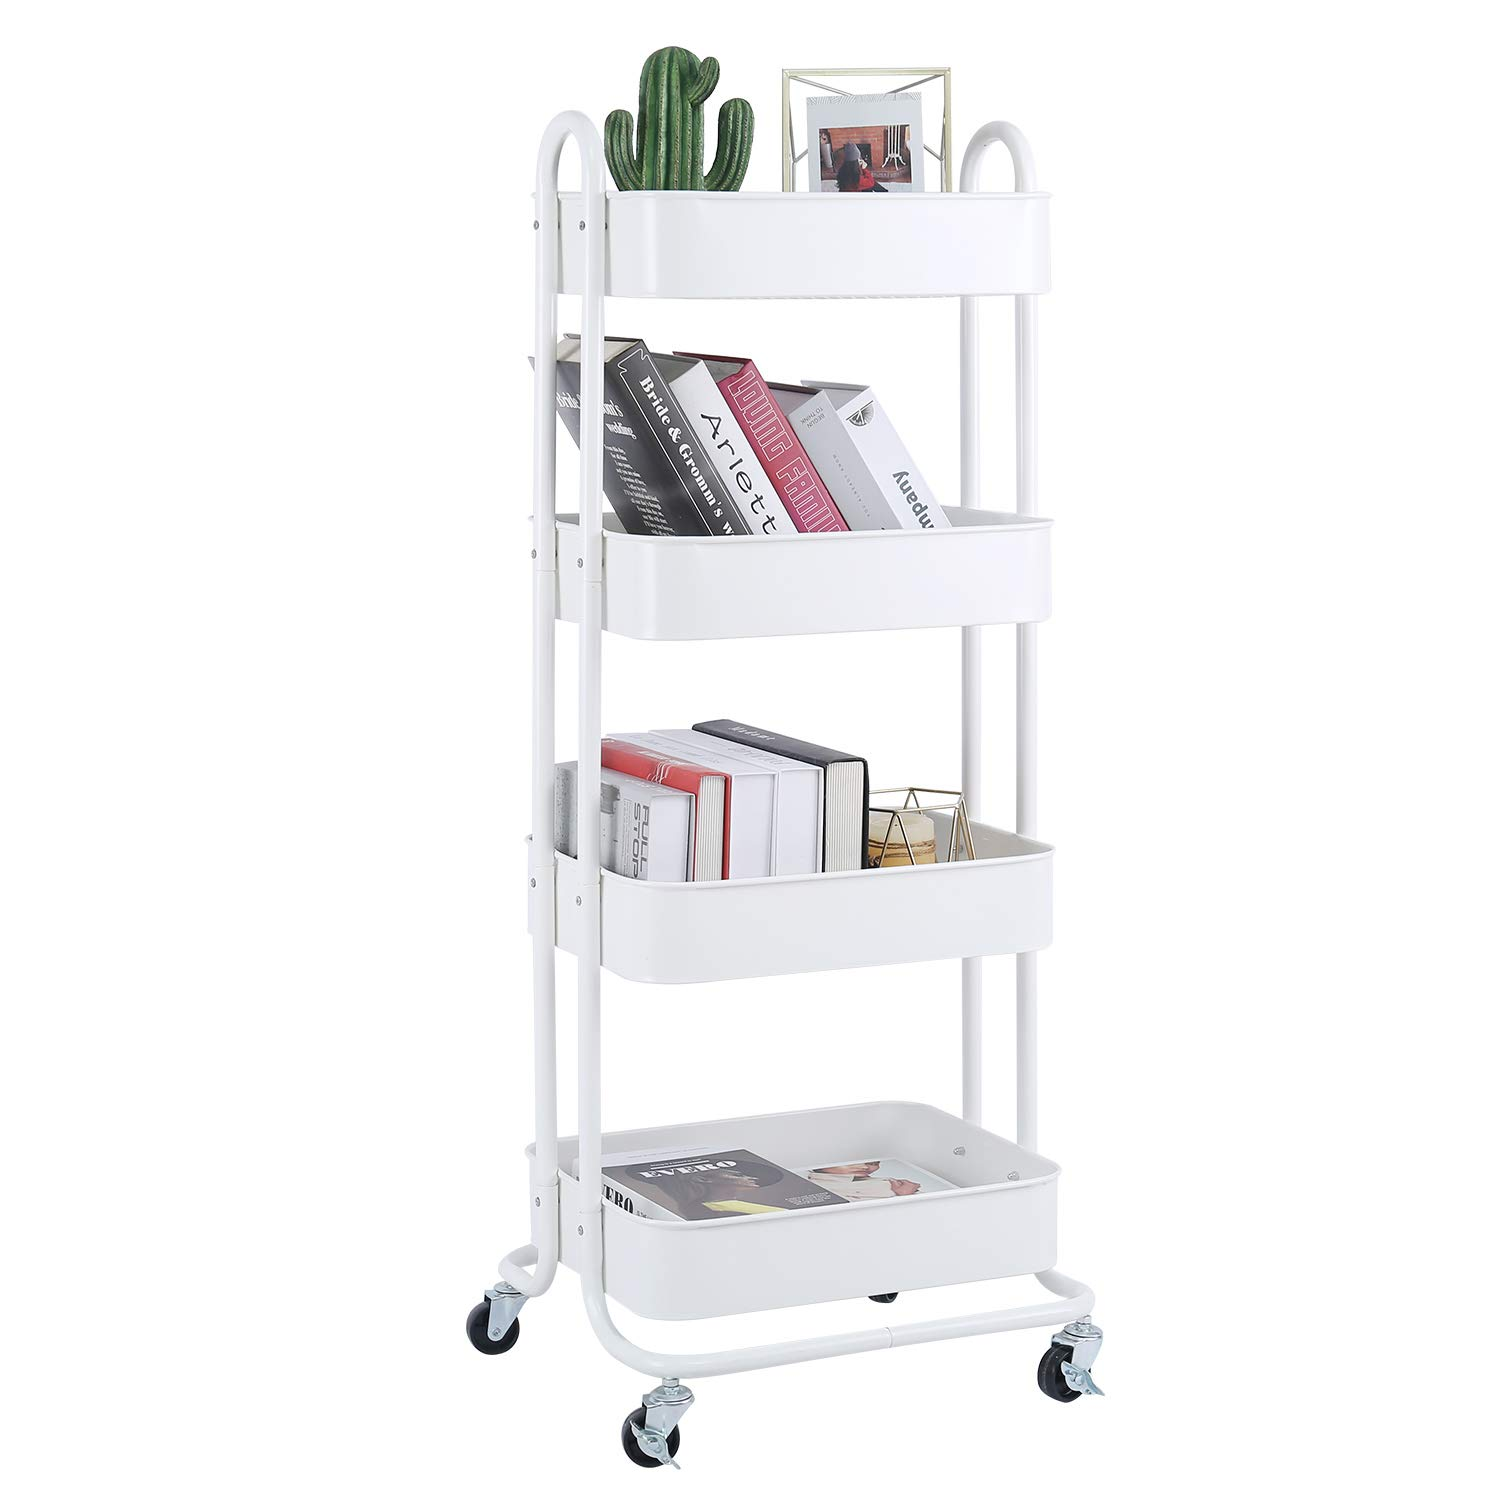 4-Tier Metal Mesh Utility Rolling Cart Storage Organizer Shelf Rack with Lockable Wheels for Living Room Kitchen Office, White